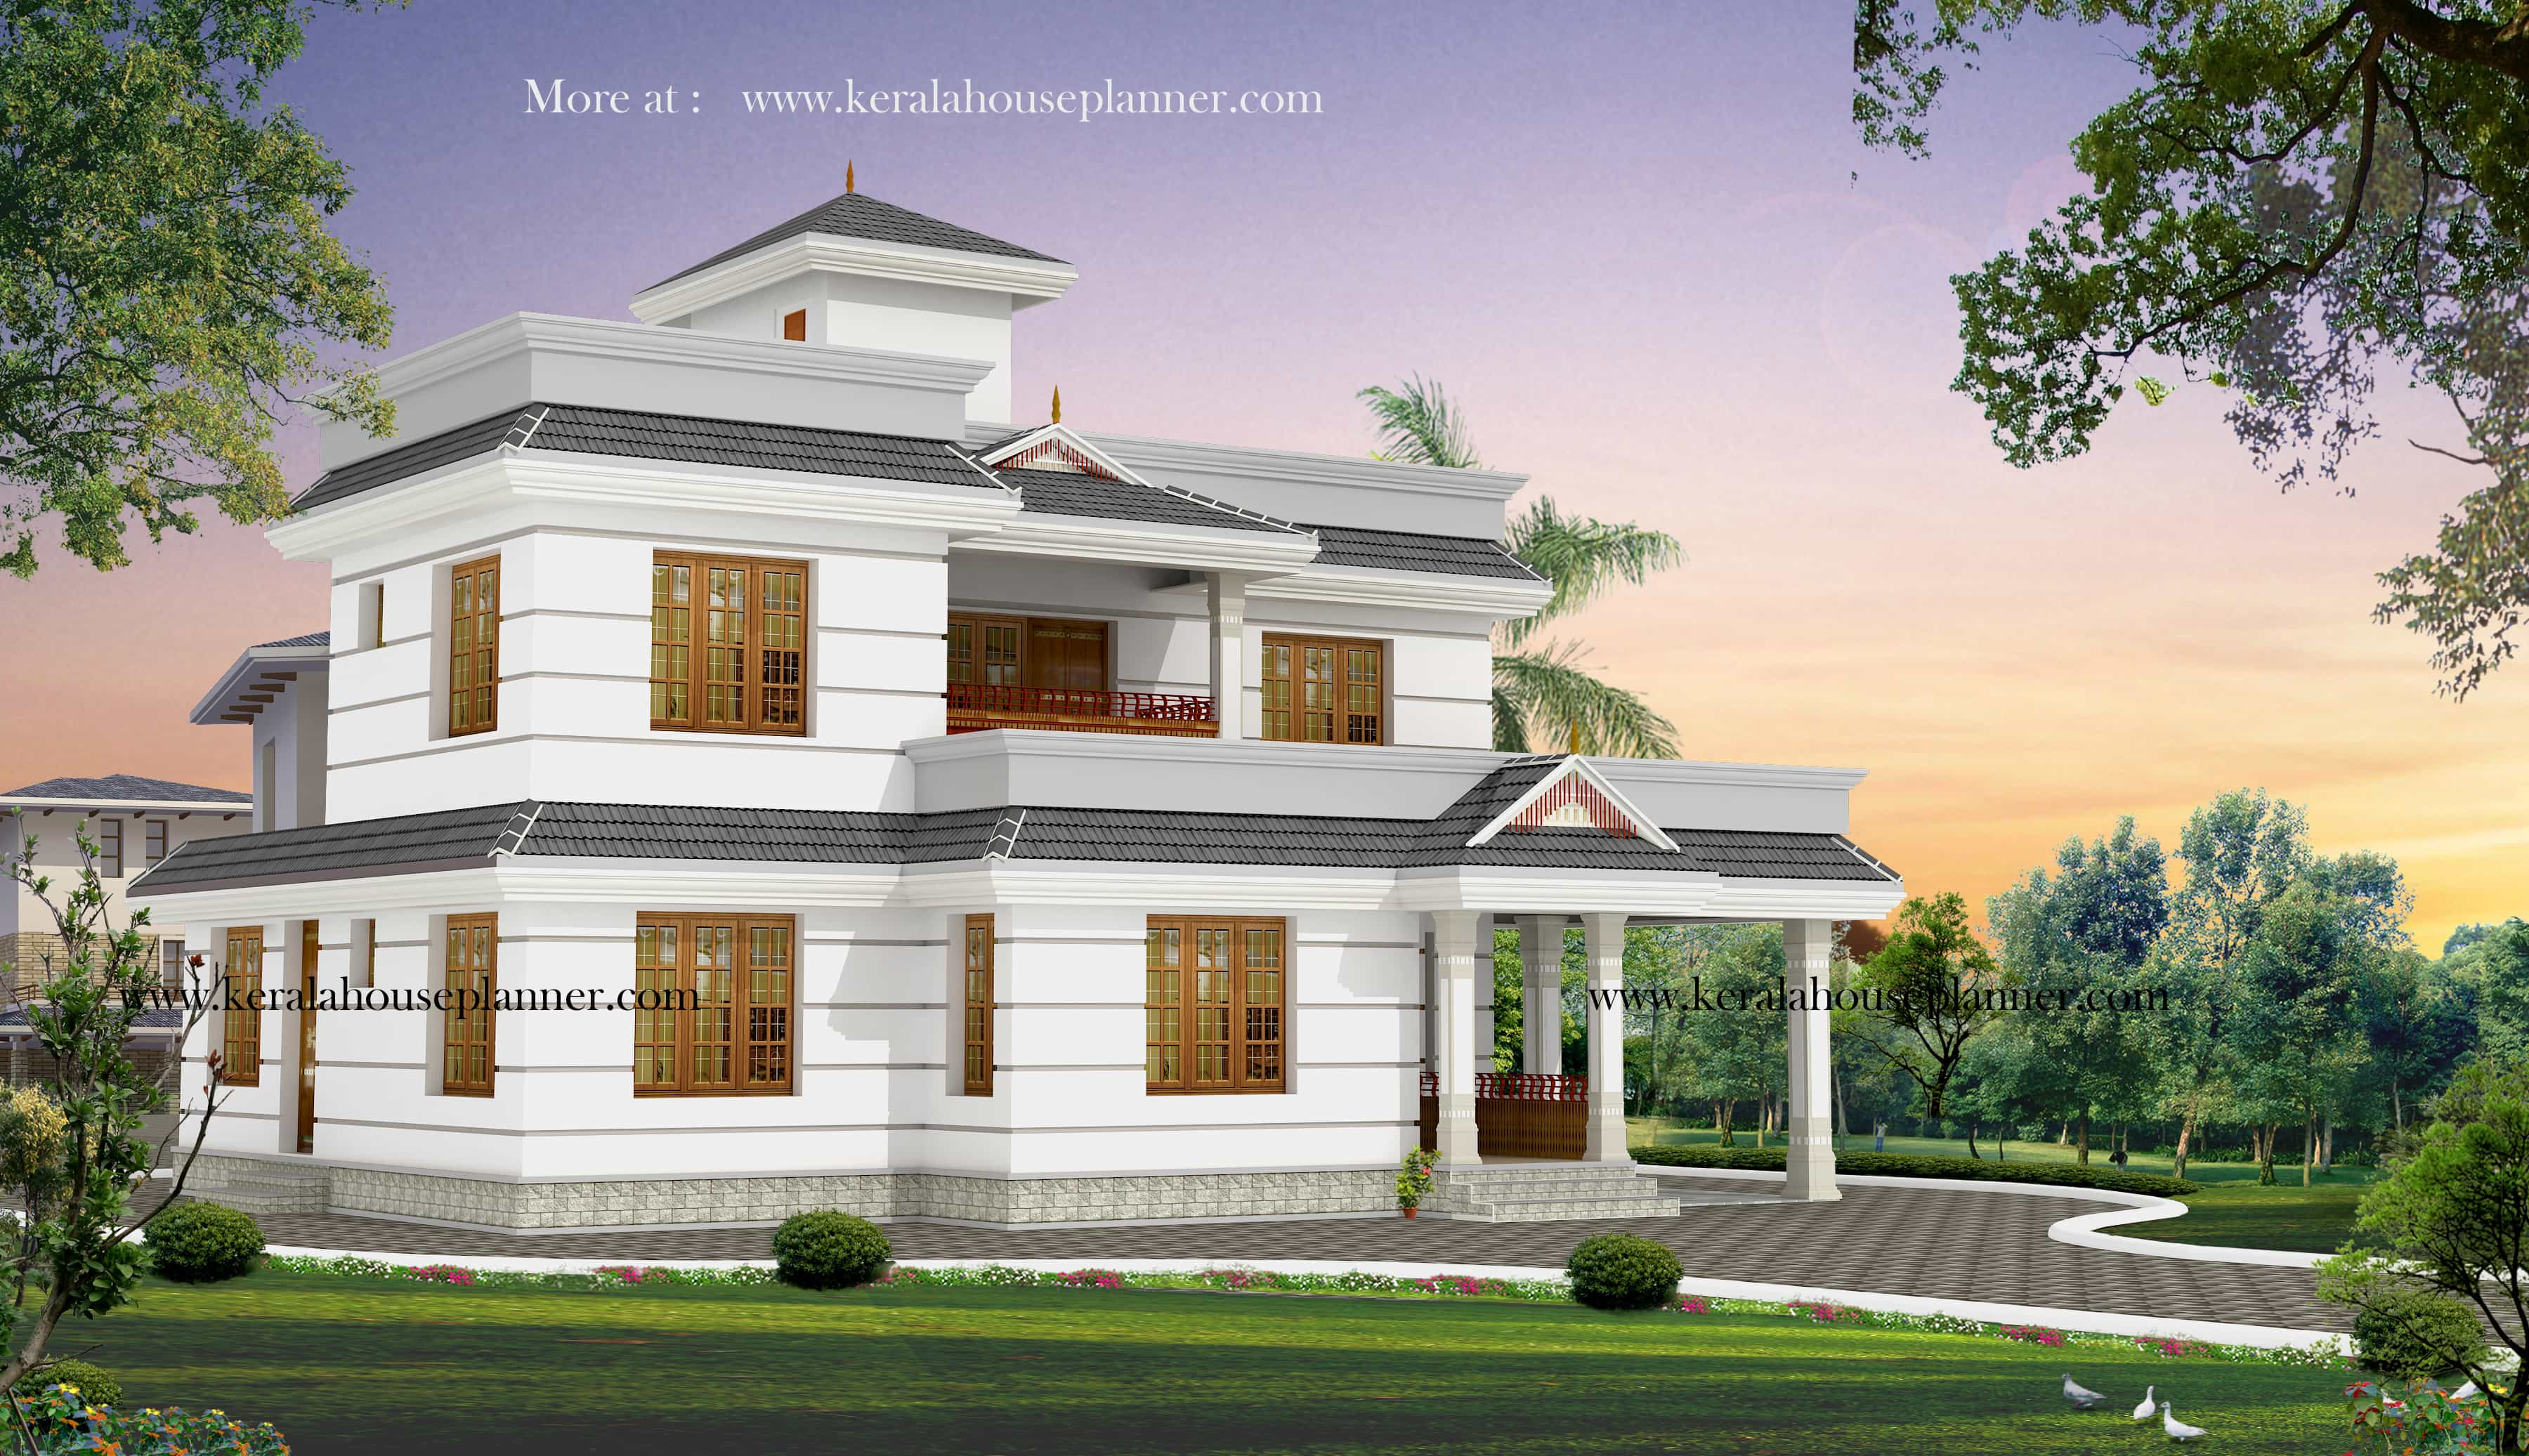 Two Storey Kerala House Designs 2 18 Keralahouseplanner